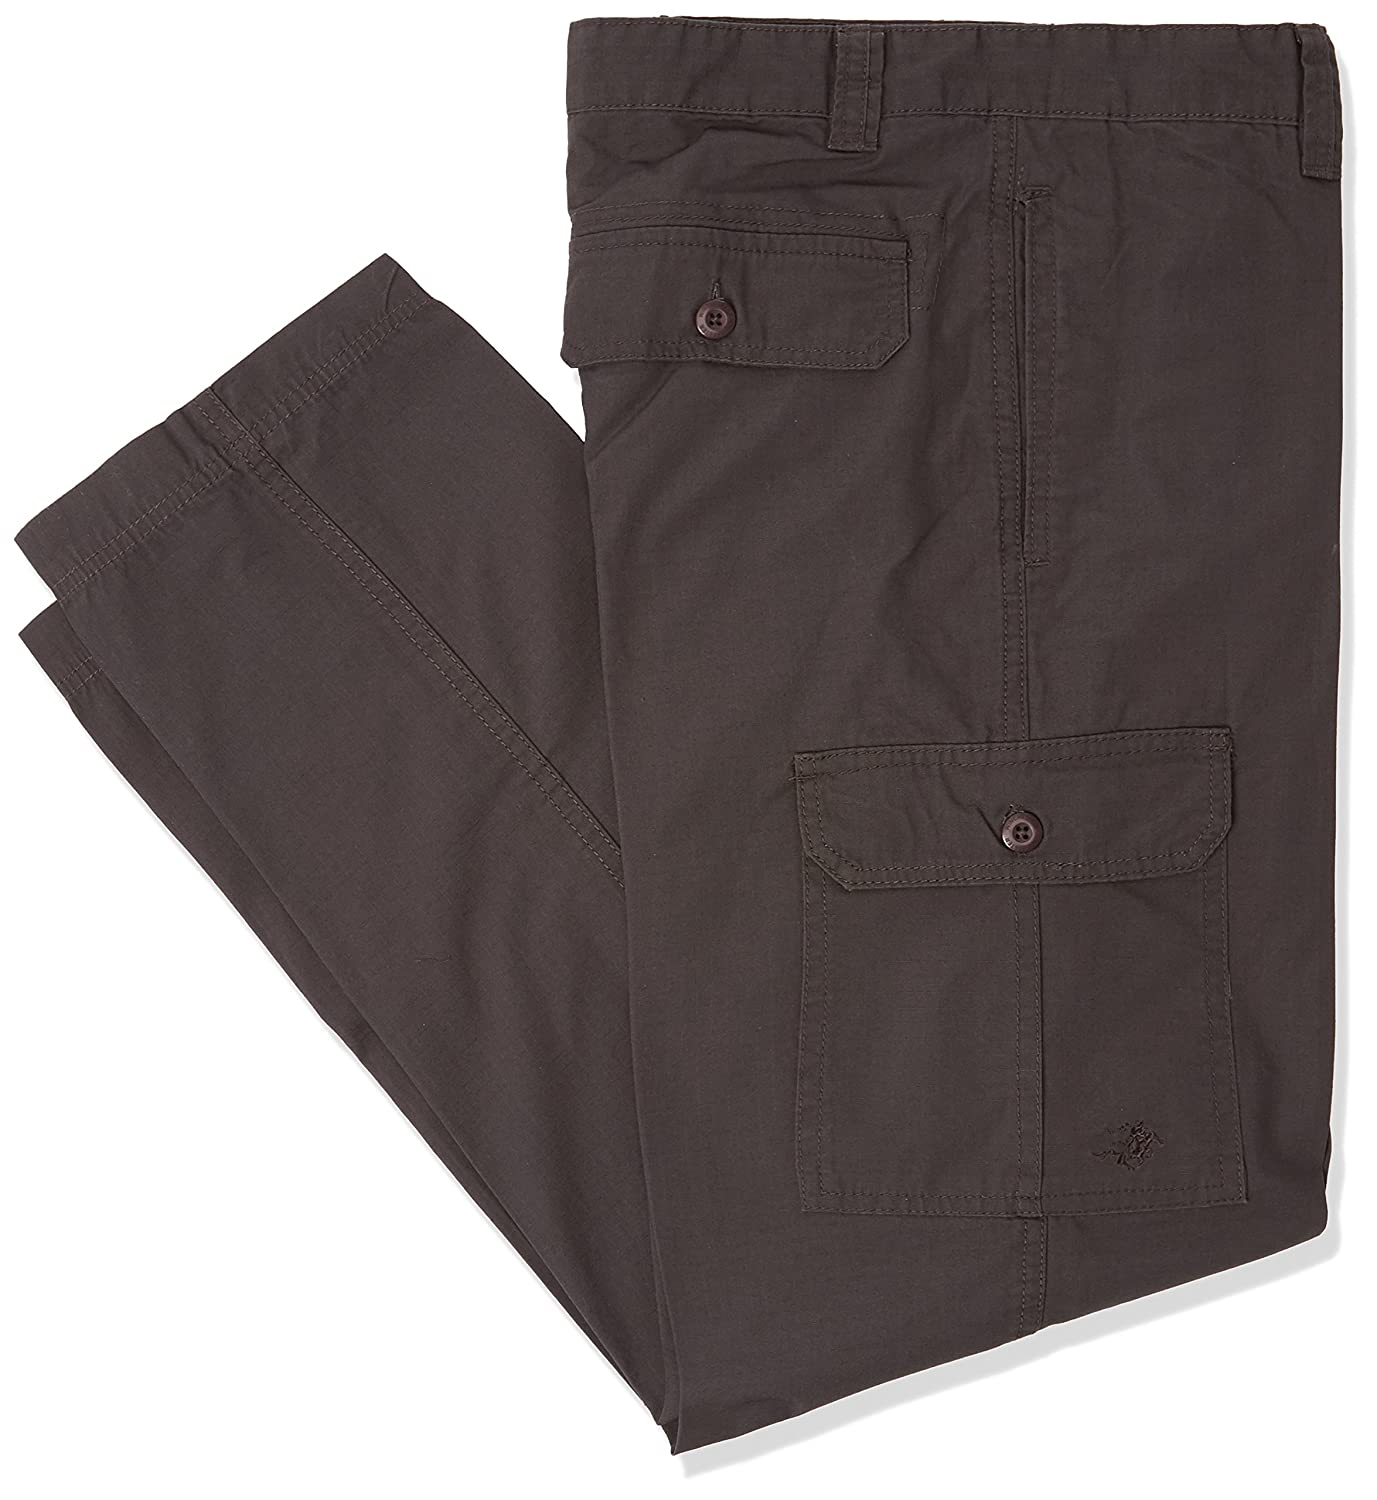 Winchester willow2  pantaló n talla 42  color gris antracita SEDETEX